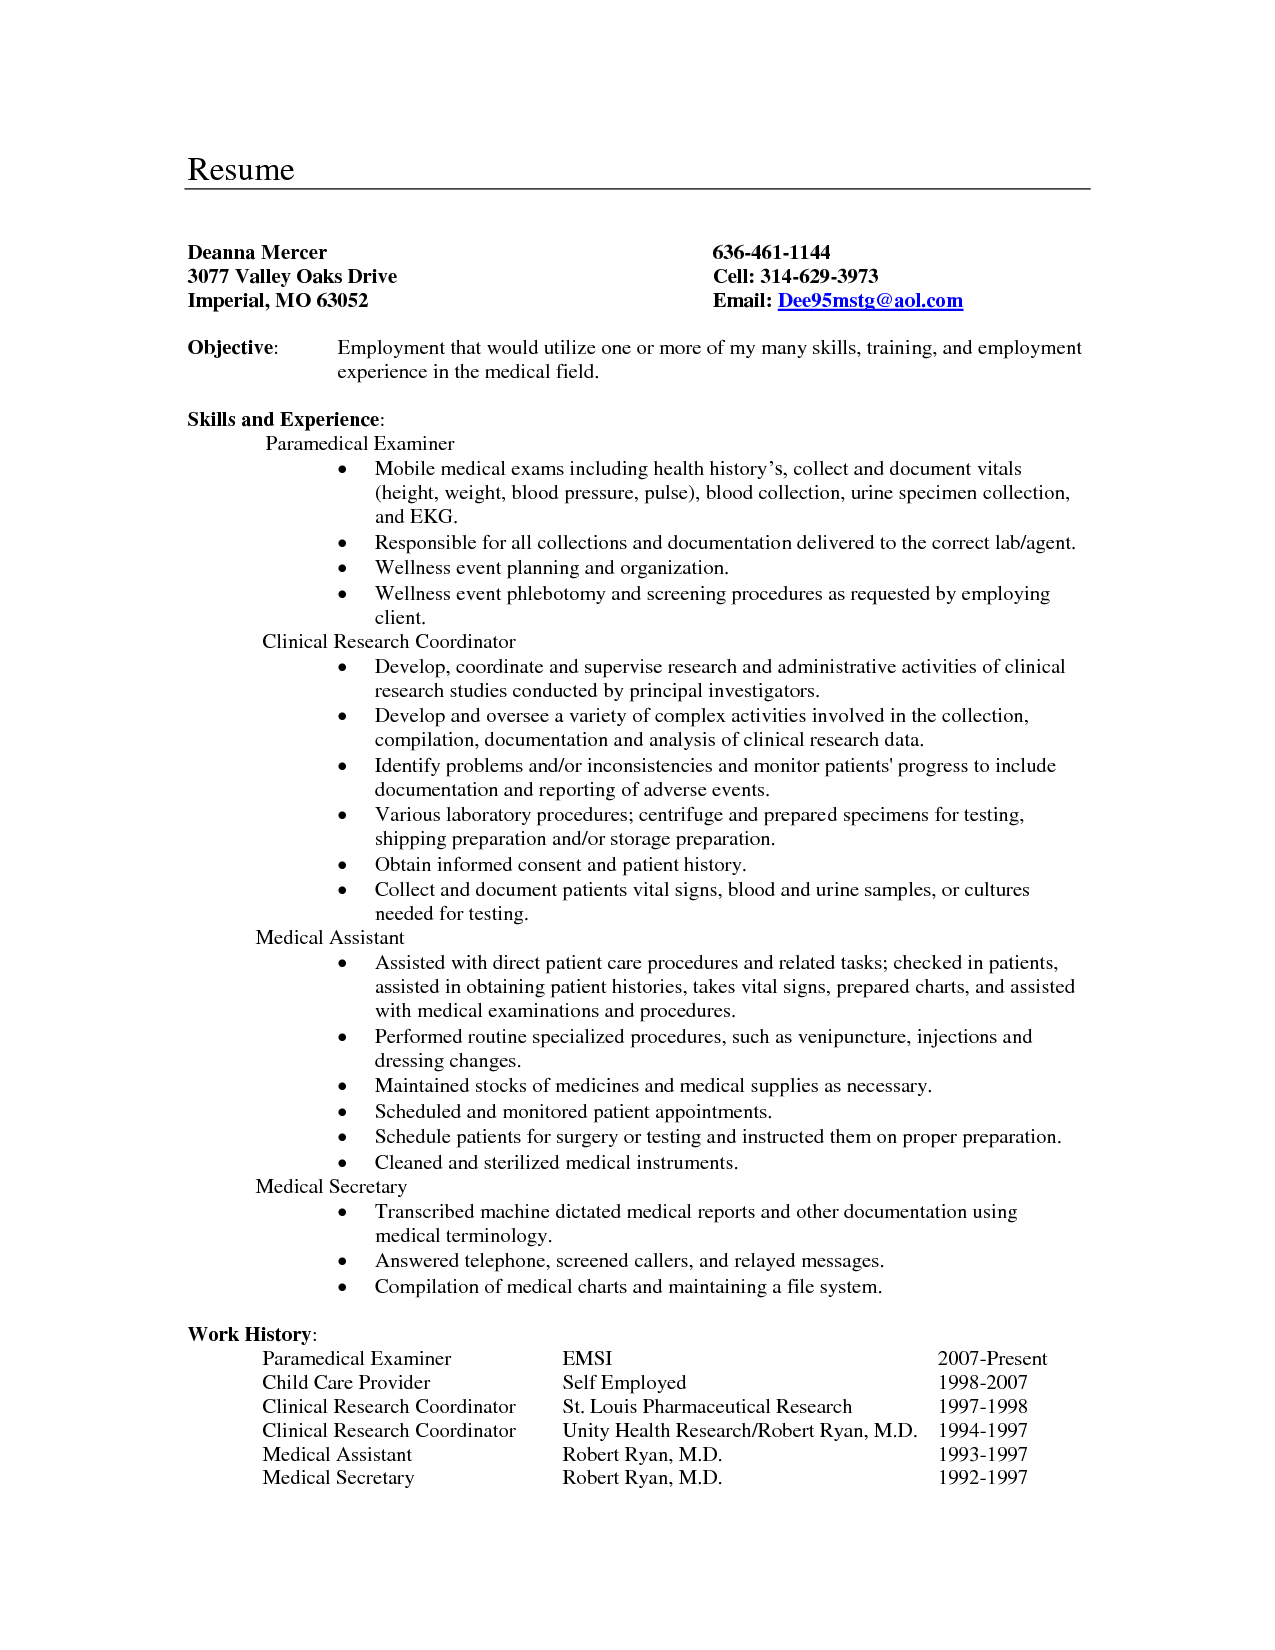 medical secretary resume objective examples - Secretary Objective For Resume Examples